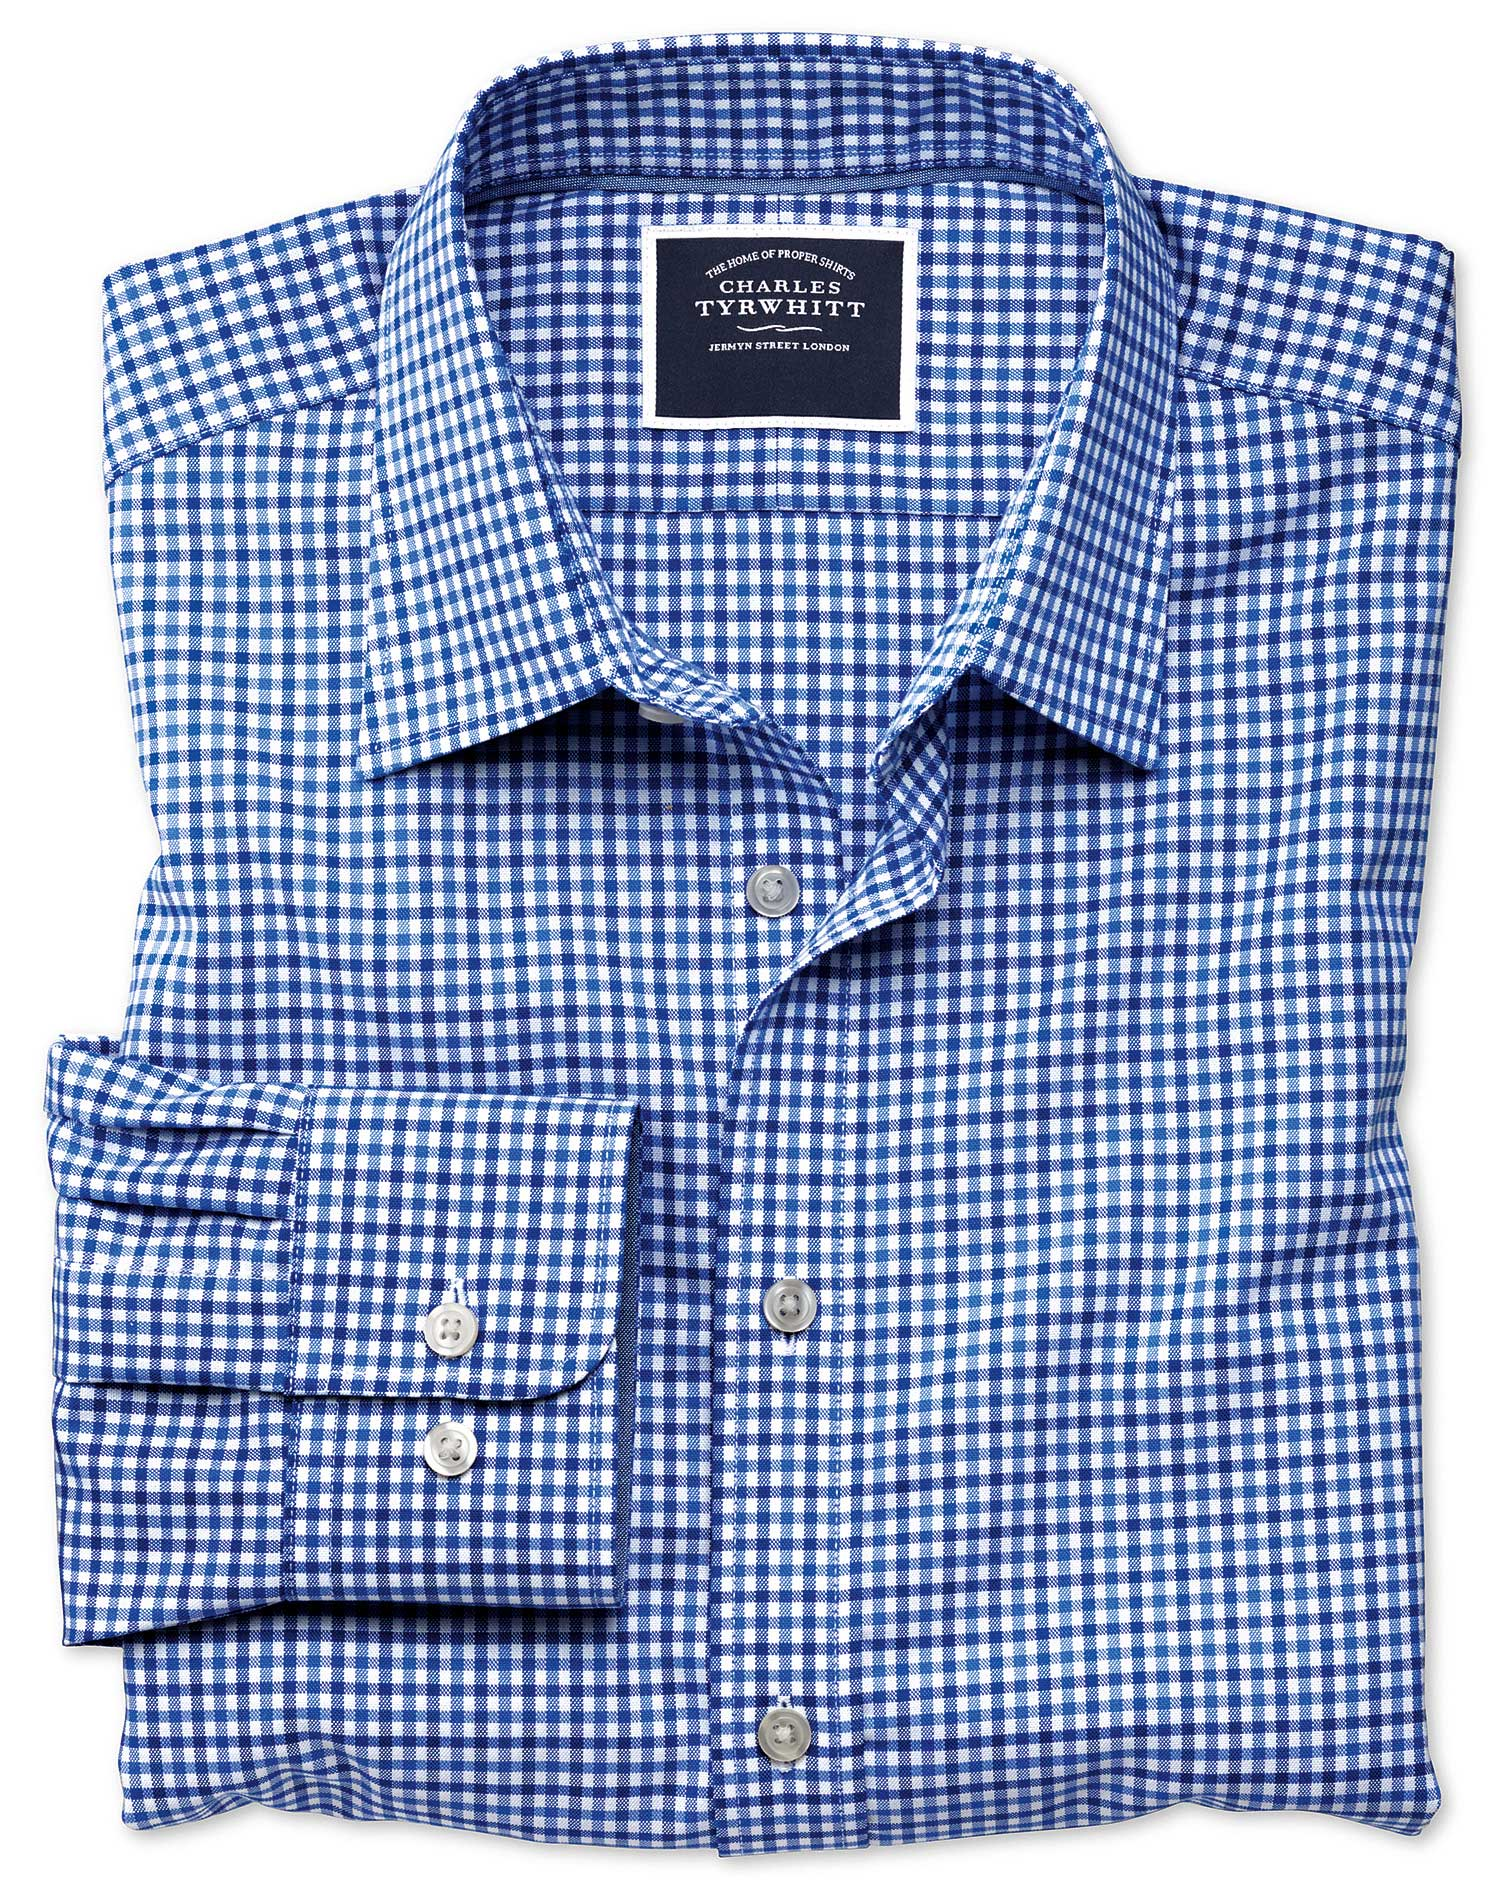 Extra Slim Fit Non-Iron Sky and Blue Gingham Oxford Cotton Shirt Single Cuff Size XXL by Charles Tyr